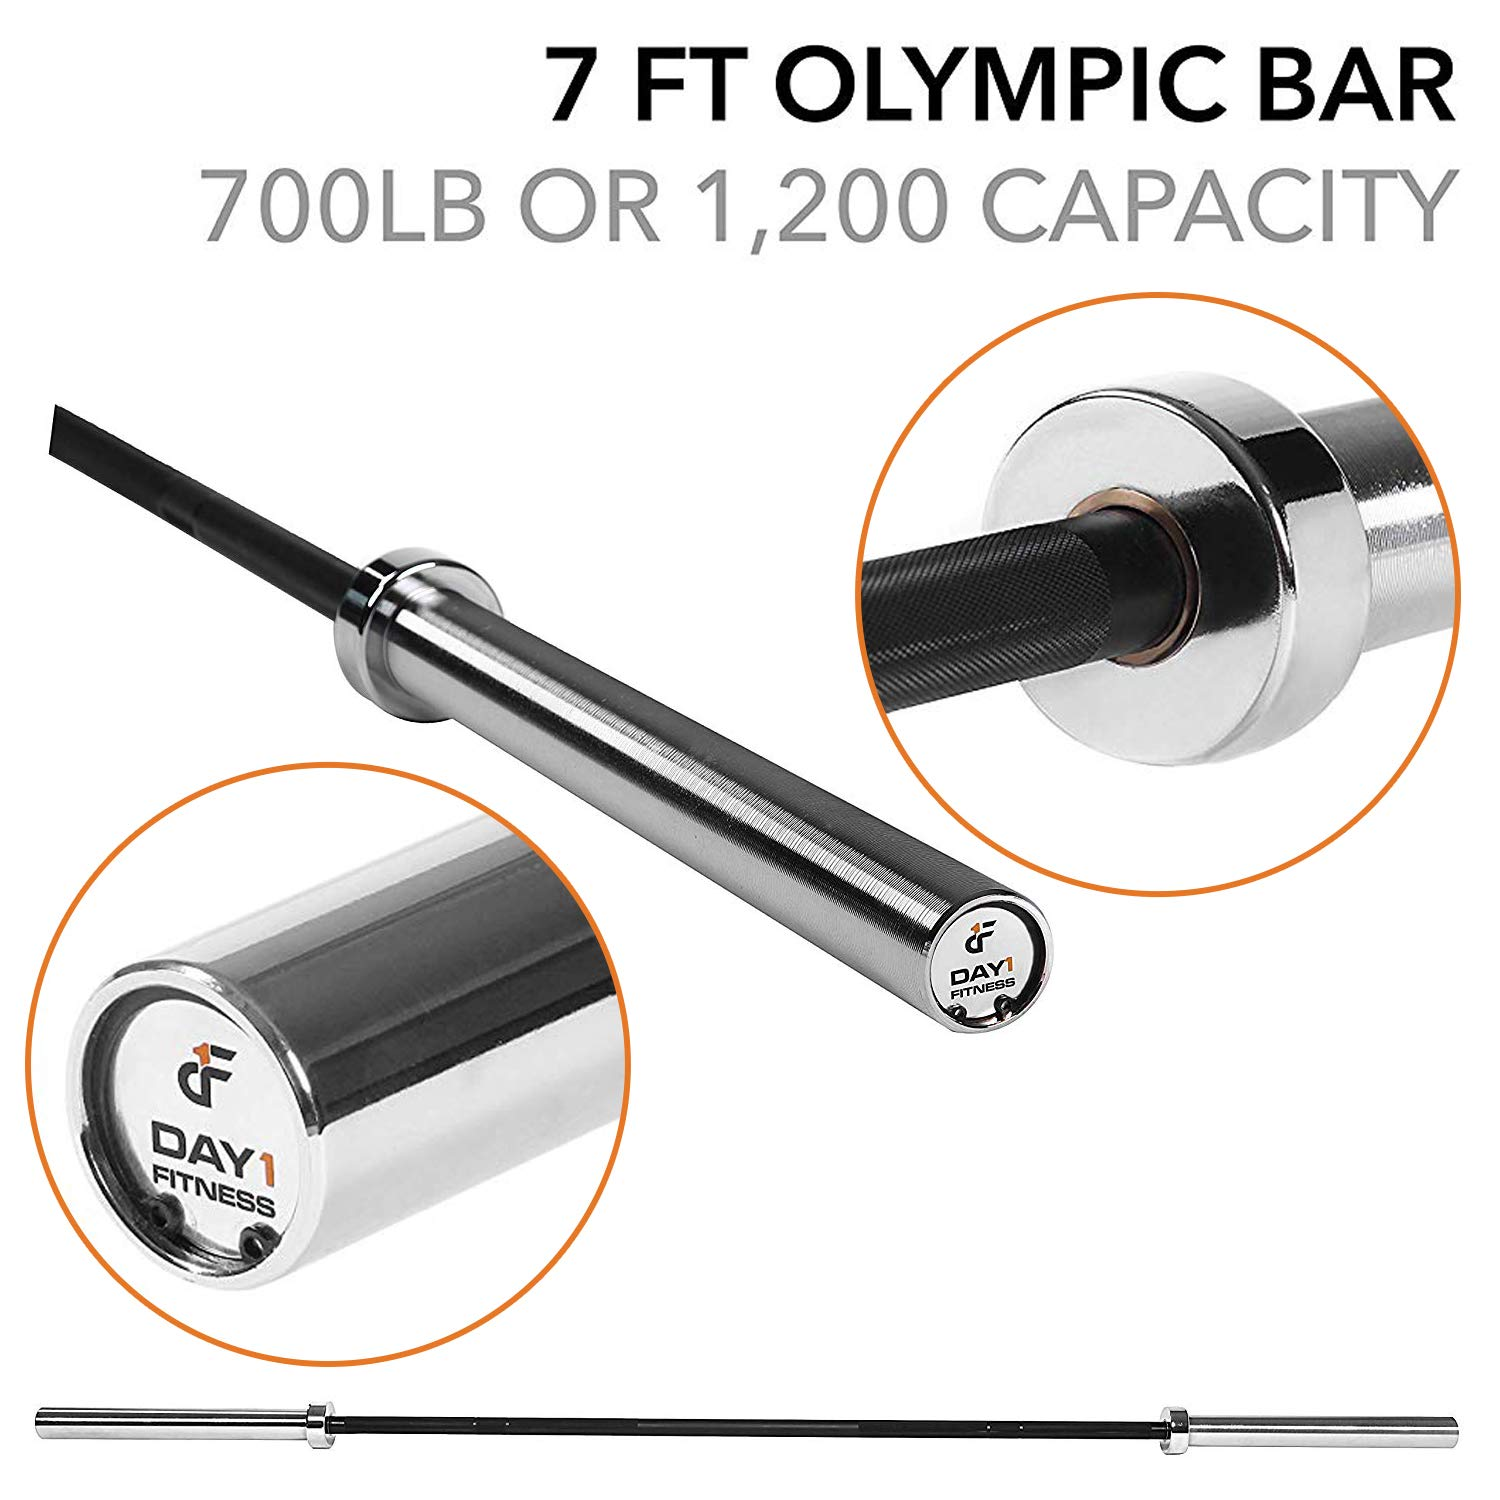 """Olympic Barbell – 2"""", 1200 lb Capacity, 7' by D1F Holds 2"""" Weighted Plates for Powerlifting, Bodybuilding, Squats, Bench Presses - Heavy Duty, Weightlifting Bar - Self-Lubricating Crossfit Barbells"""